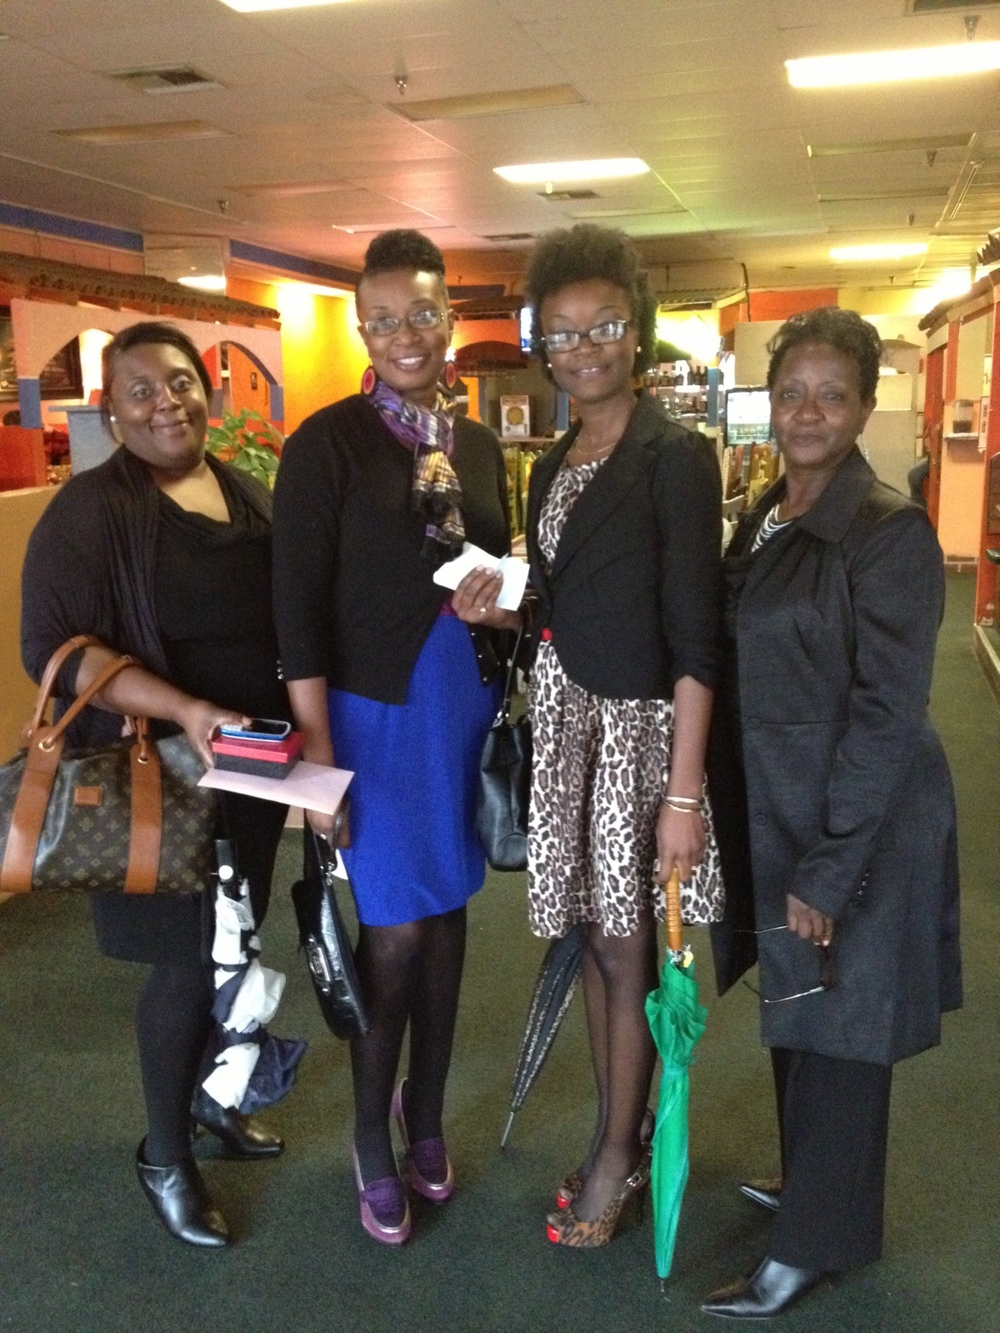 From left to right: God sister, Yolanda; Sonya; sister, LaSalle; mom, Carolyn